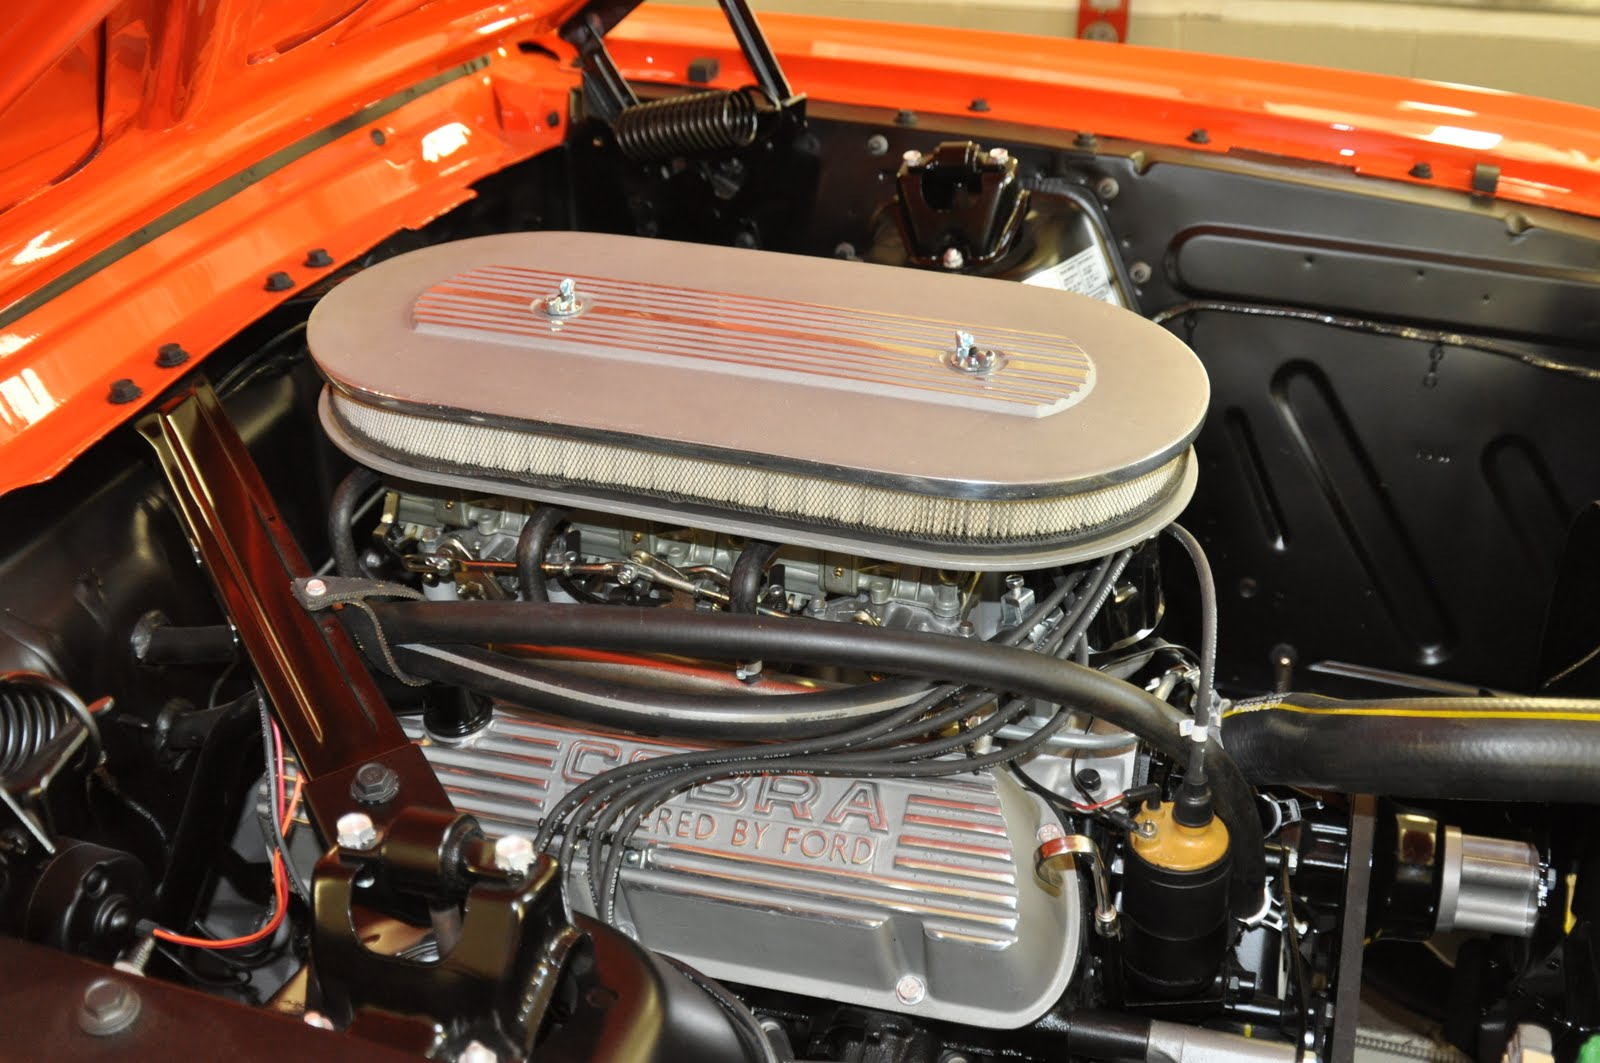 1965 Mustang Tri-Power set up with Buddy Bar manufactured open letter Cobra  Aluminum Valve Covers. All images ©Virginia Classic Mustang Inc.